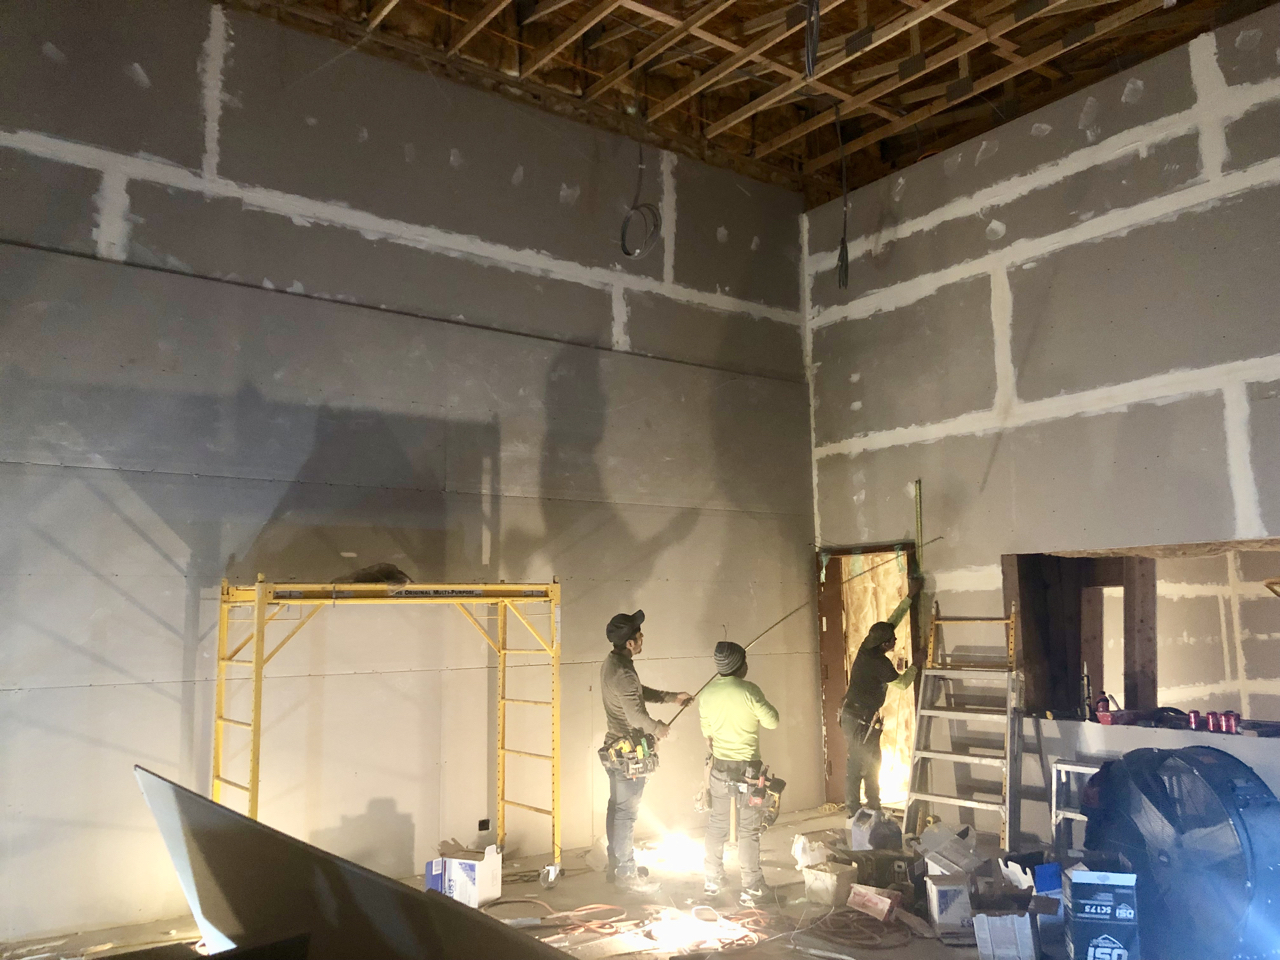 The second level of sheetrock is going up in studio 1. The seems are staggered and the corners are lapped. The opening on the right is the window into control room 1.